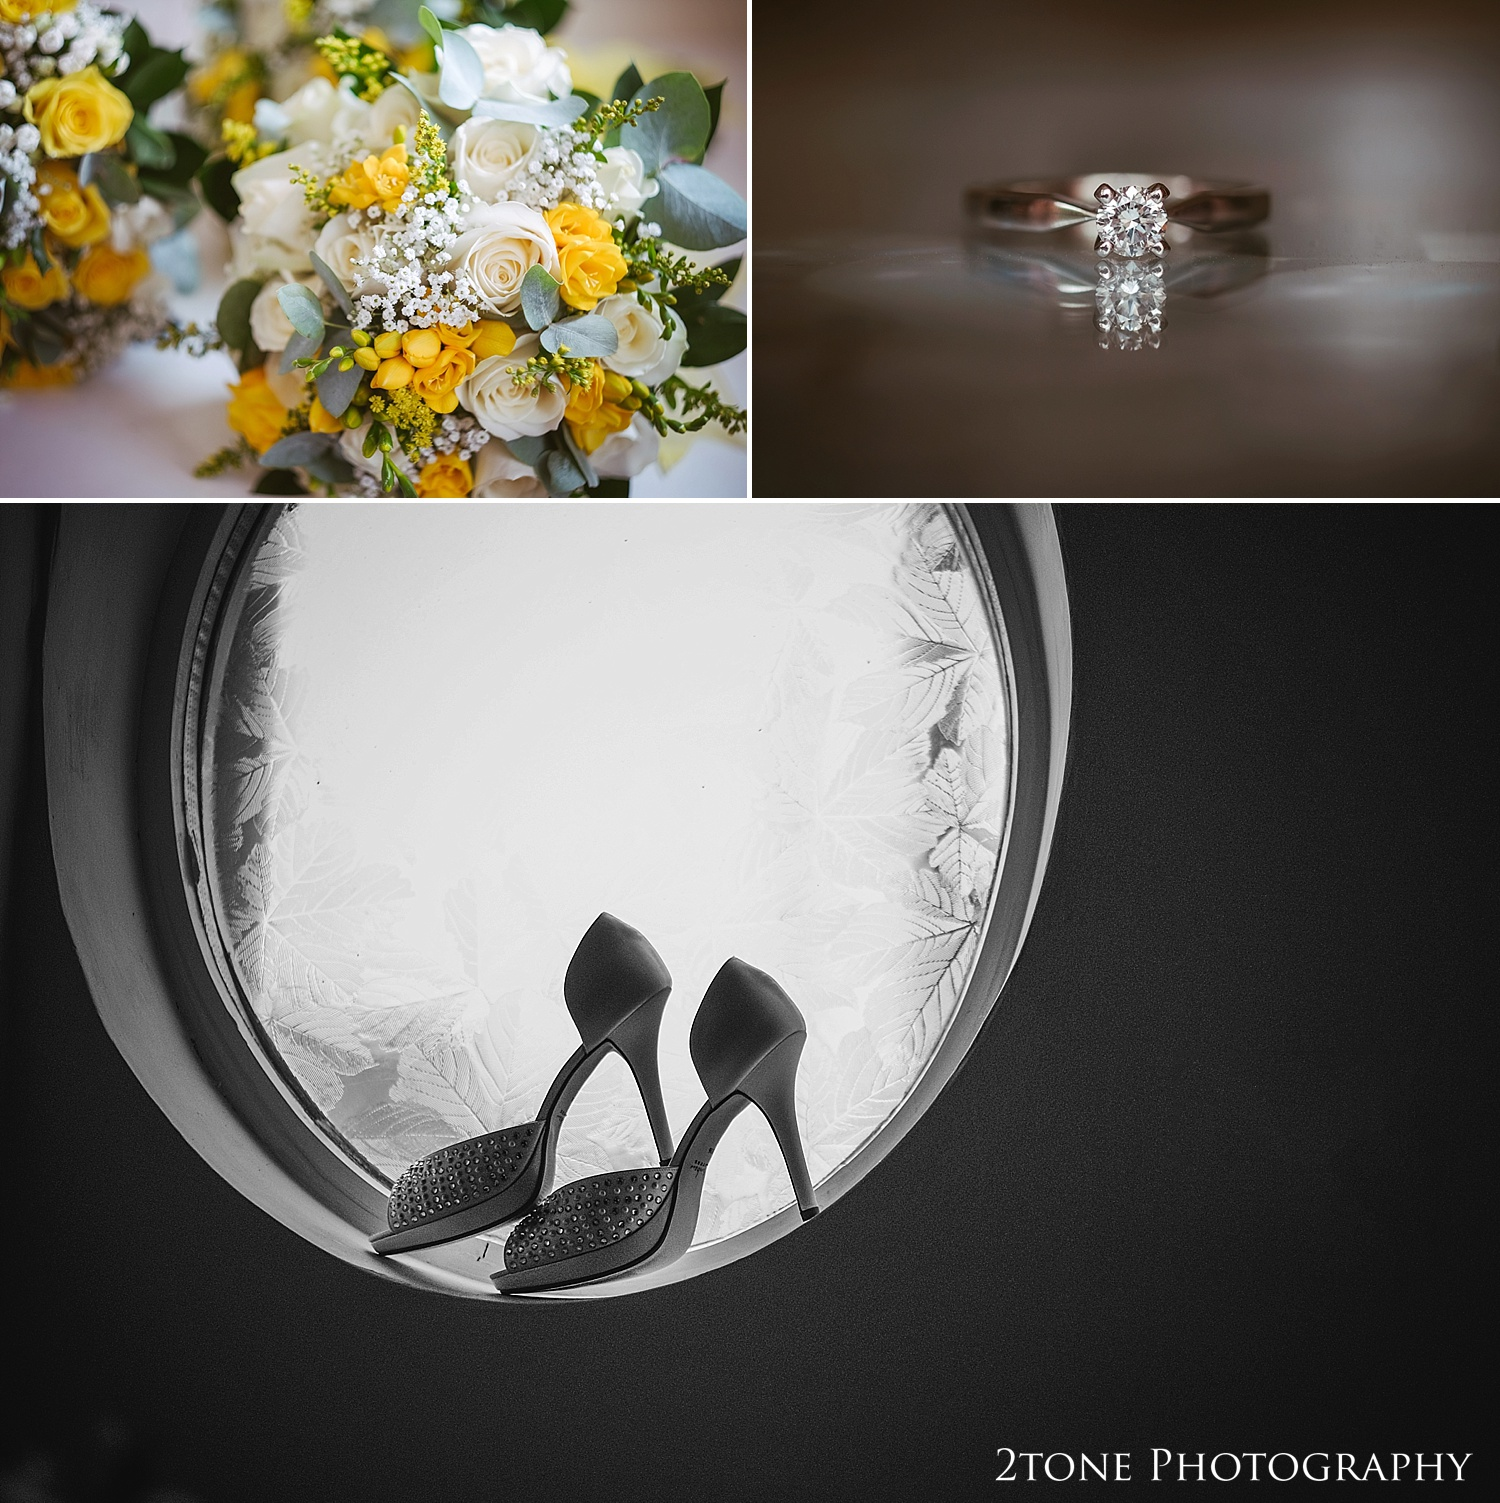 Wedding shoes by wedding photographers in Durham, www.2tonephotography.co.uk